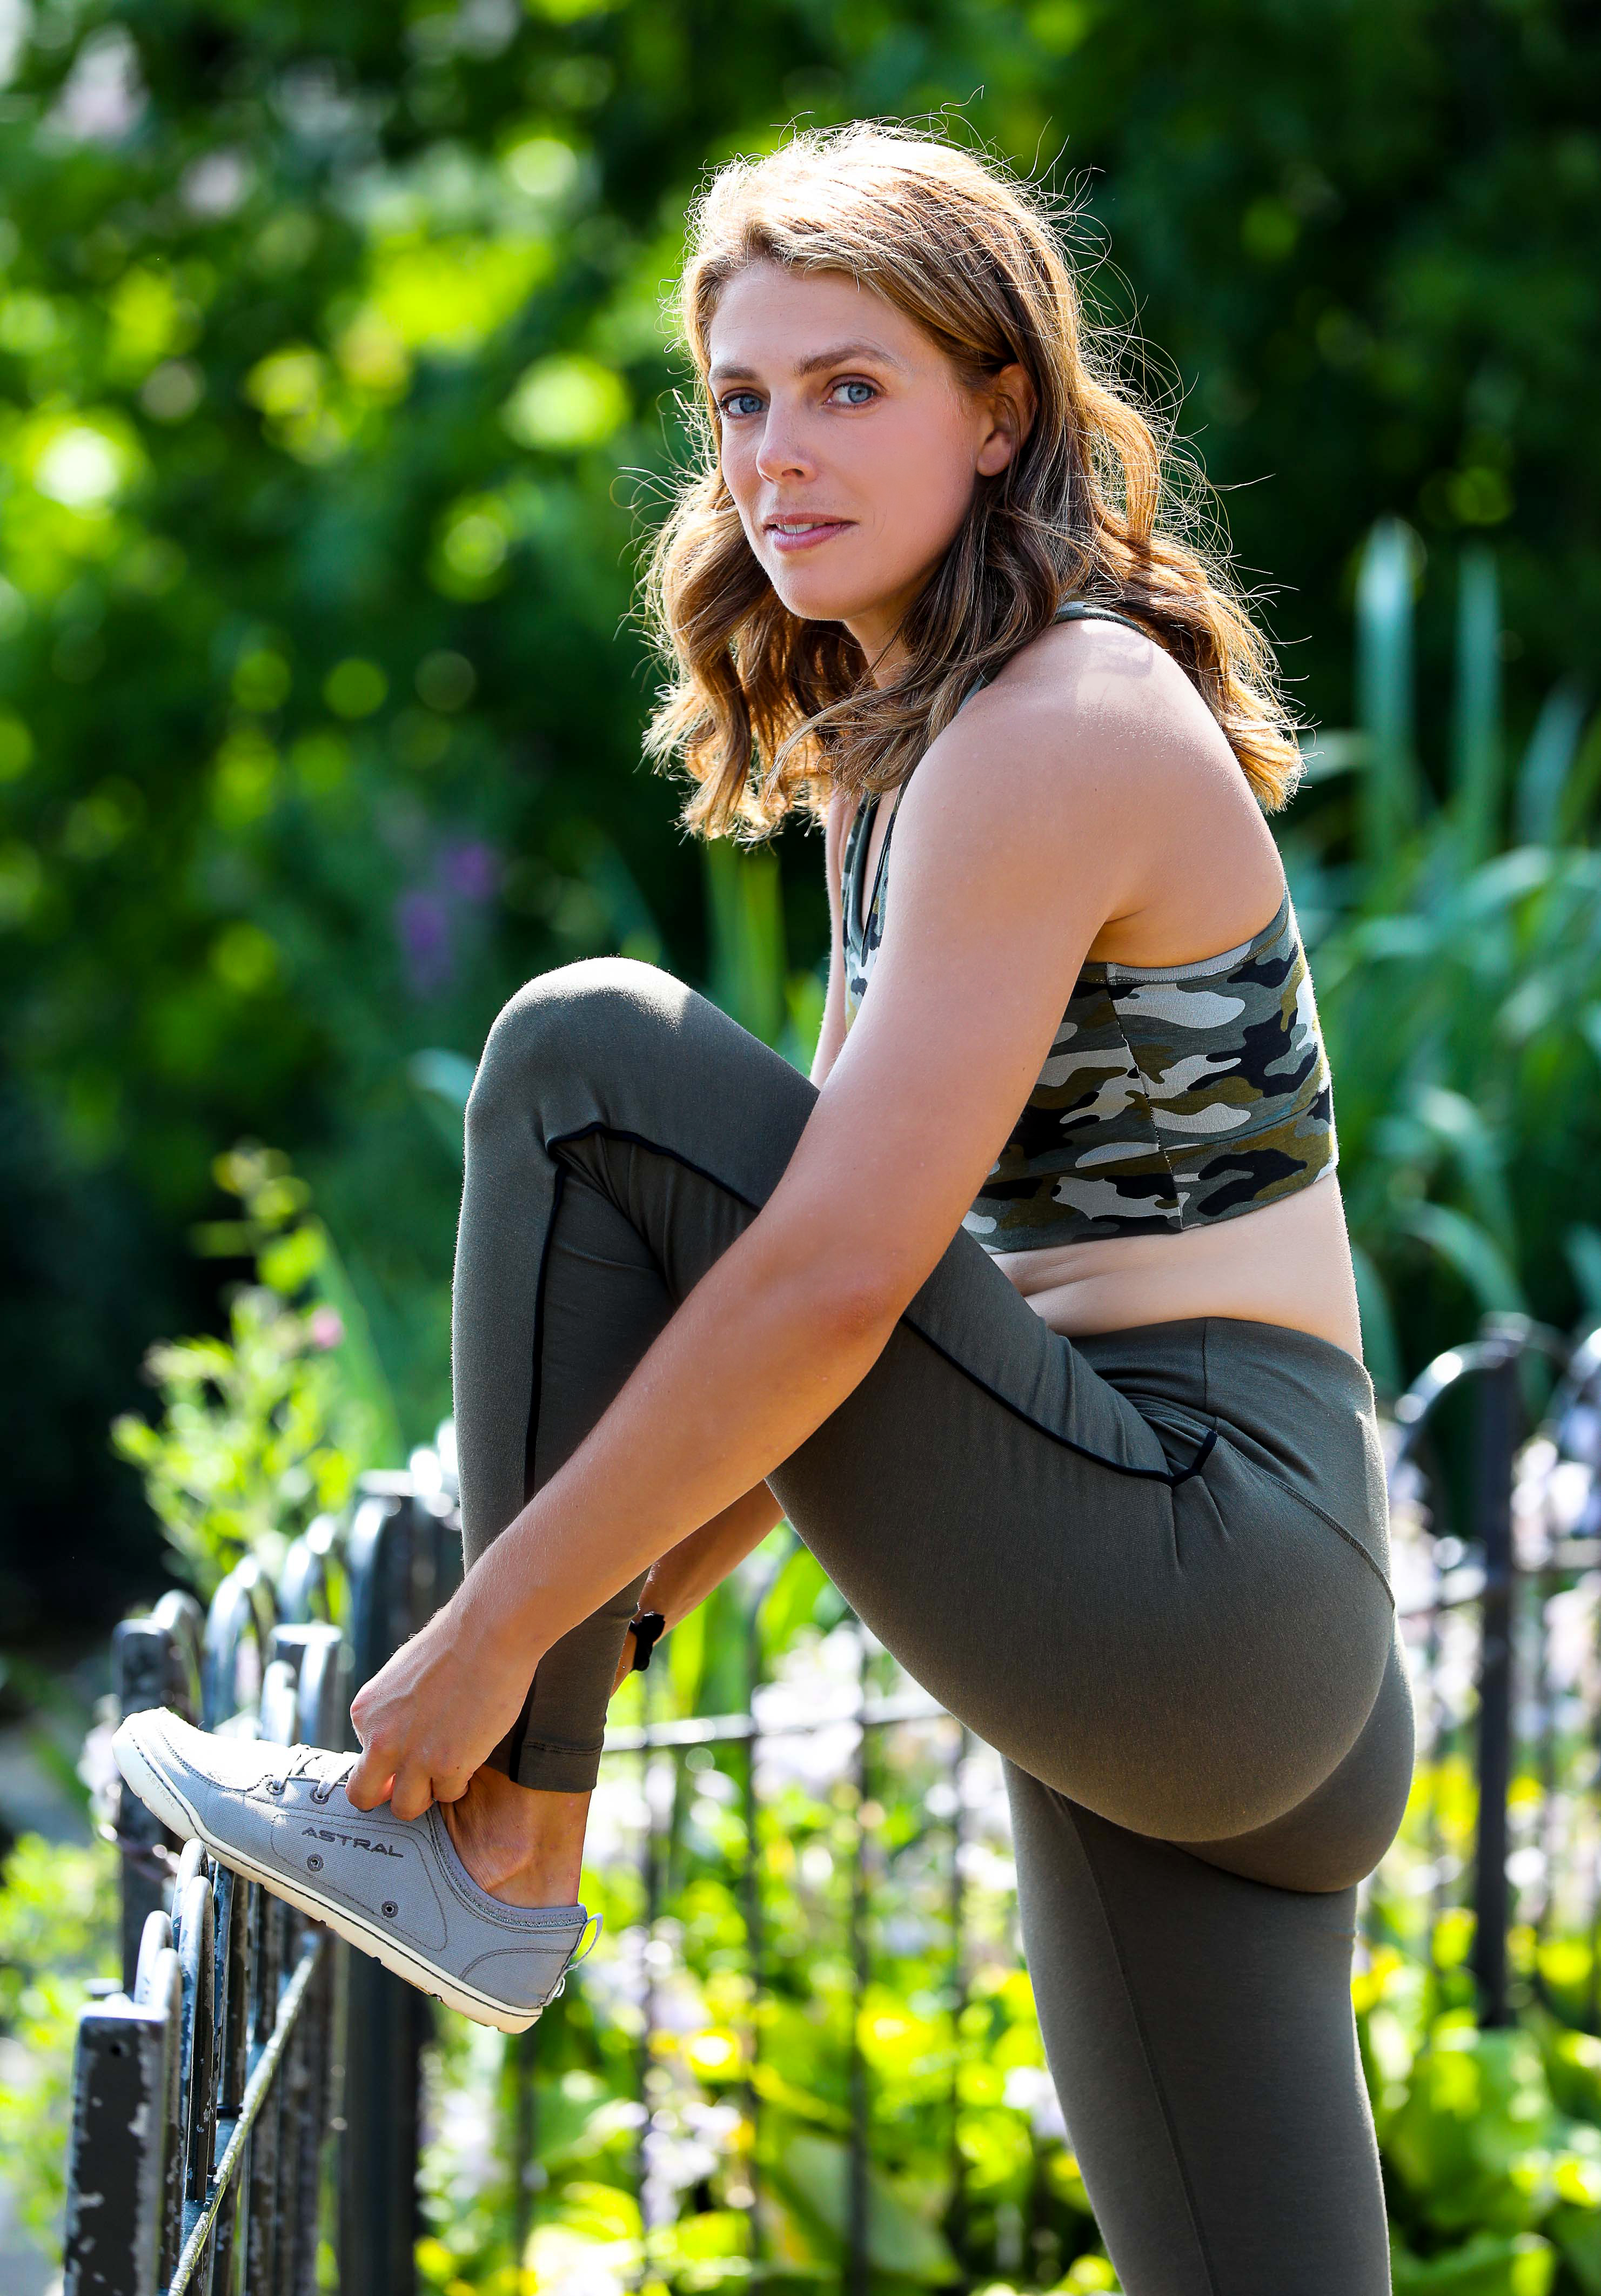 Megan Hine wearing Asquith eco-friendly activewear in Hyde Park